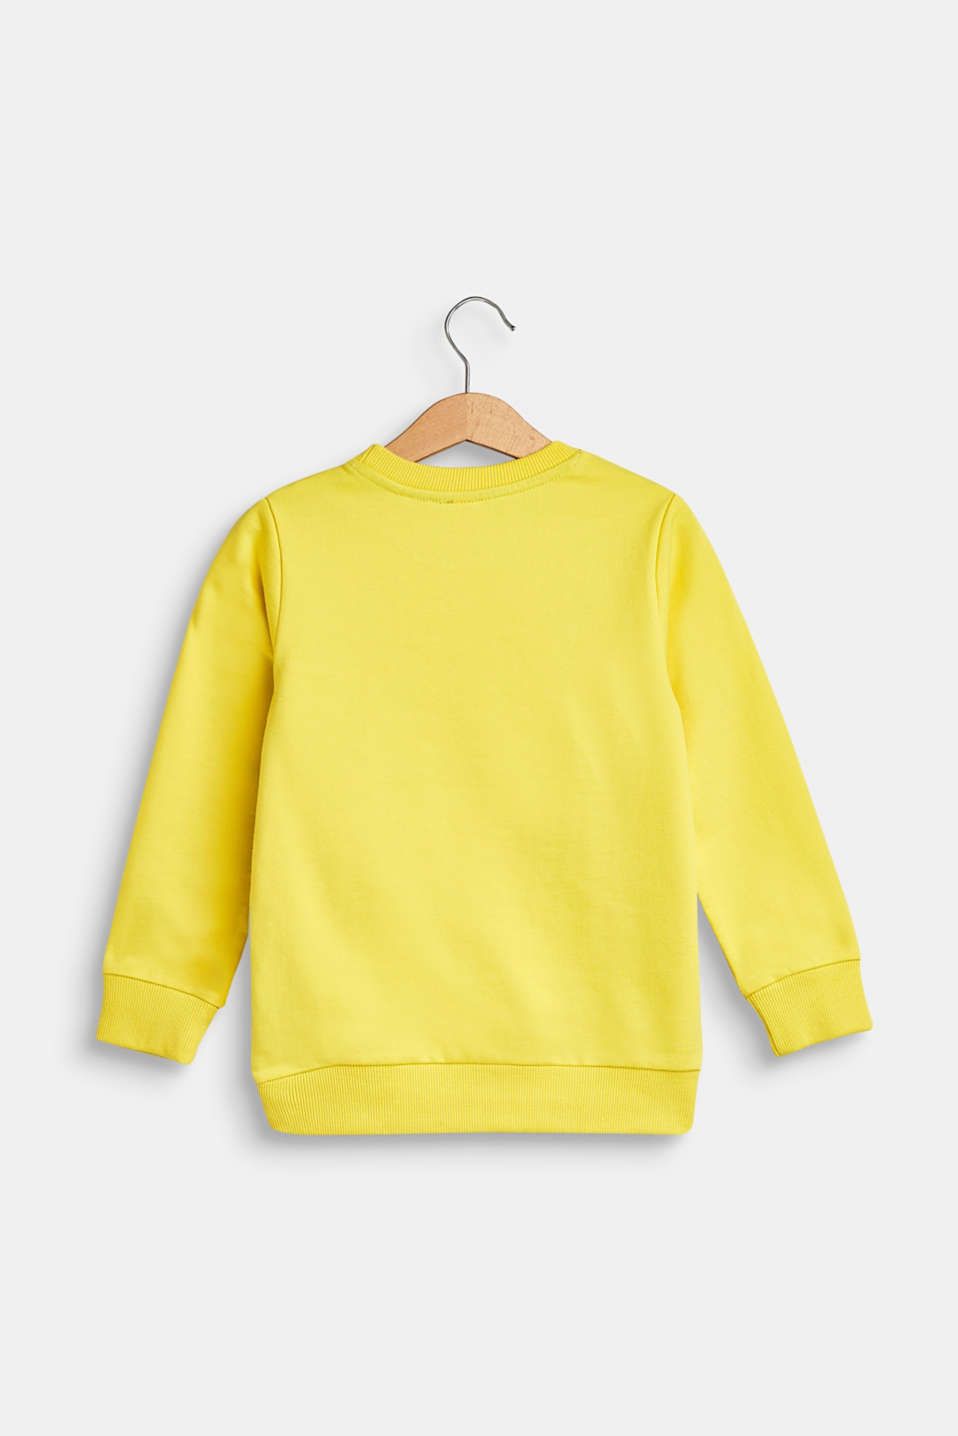 Sweatshirt with statement print, 100% cotton, BRIGHT YELLOW, detail image number 1